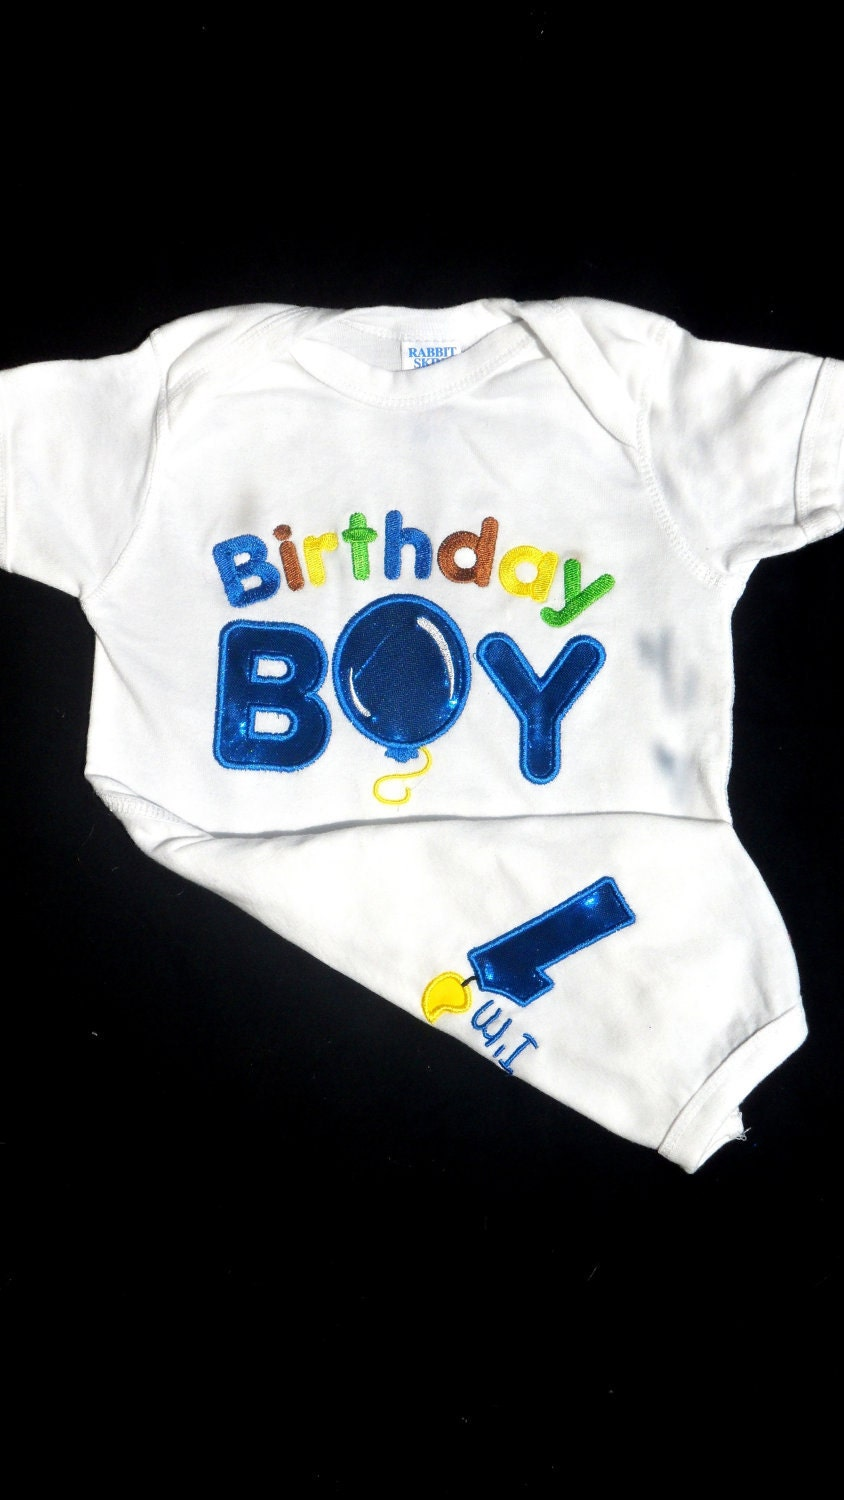 Shop for Boy First Birthday clothing & apparel on Zazzle. Check out our t-shirts, polo shirts, hoodies, & more great items.